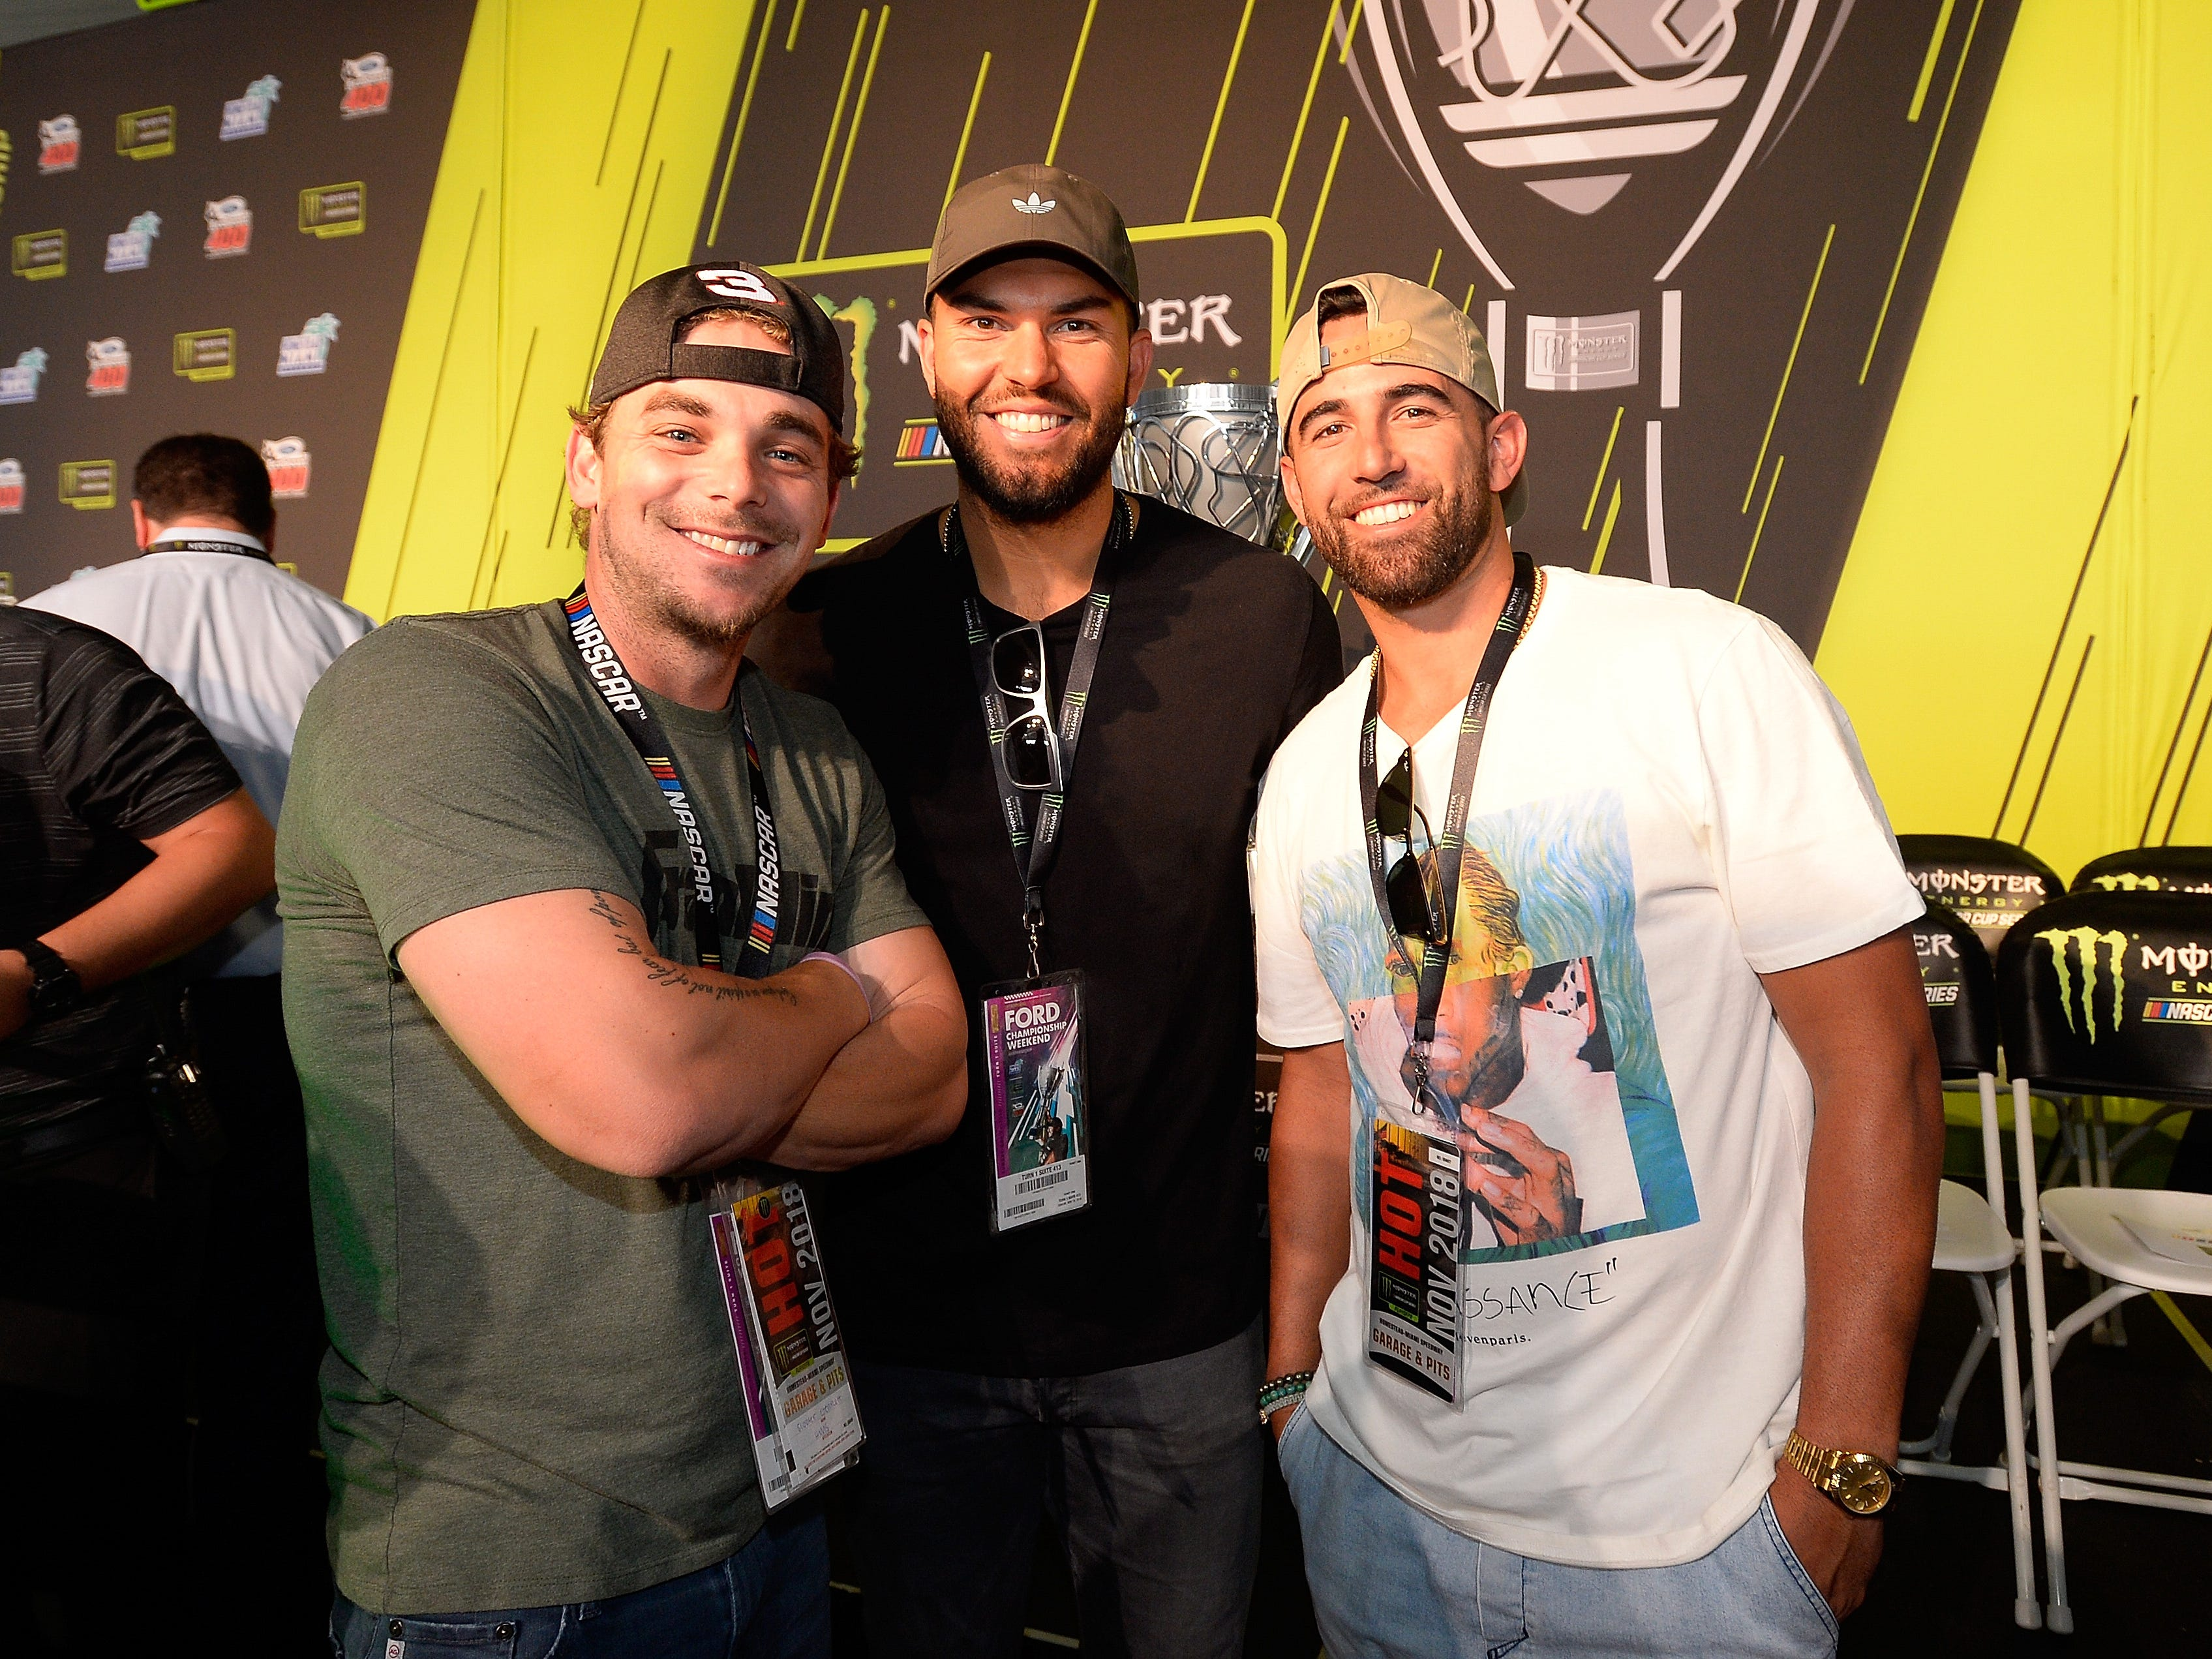 Major League Baseball players Scooter Gennett (left), Eric Hosmer and Deven Marrero attend the driver's meeting prior to the Ford EcoBoost 400 at Homestead-Miami Speedway.